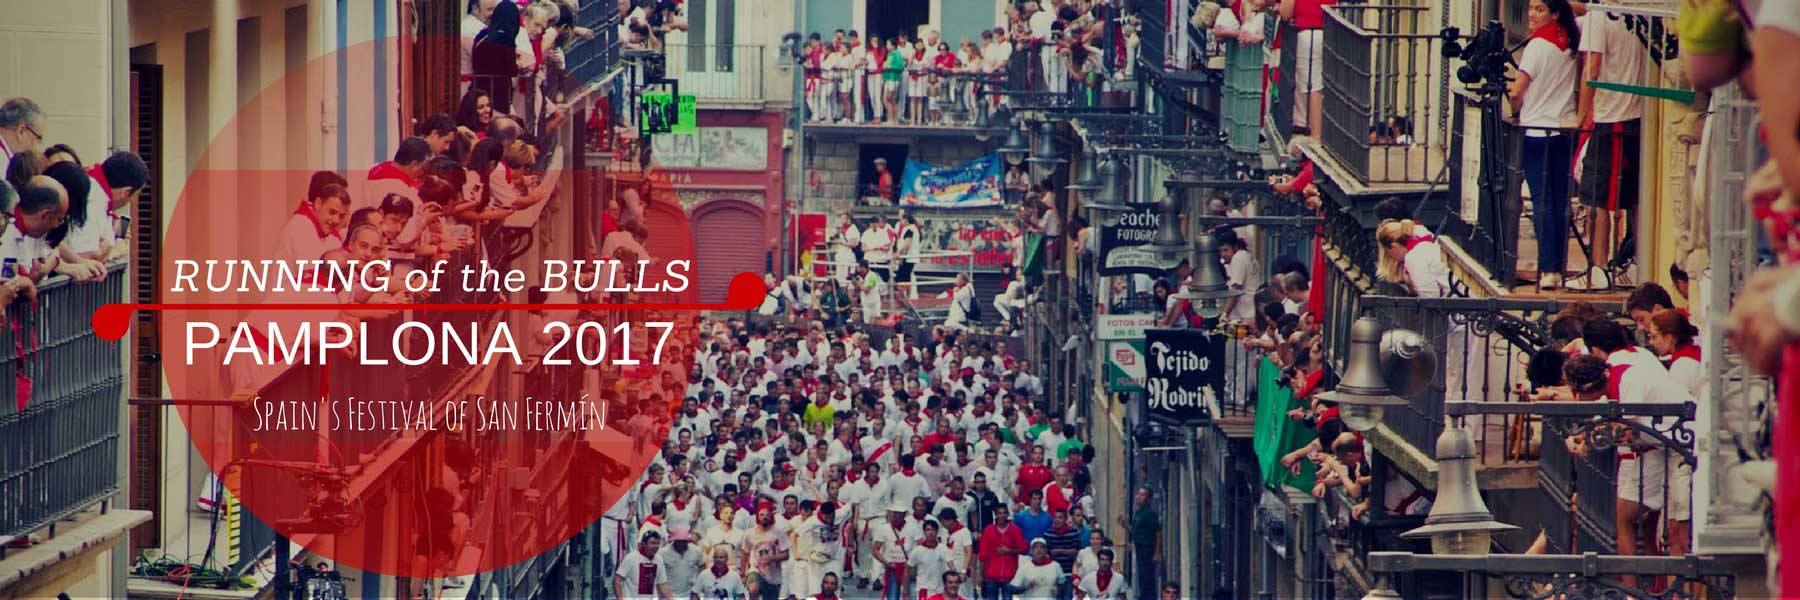 Pamplona 2017 Packages